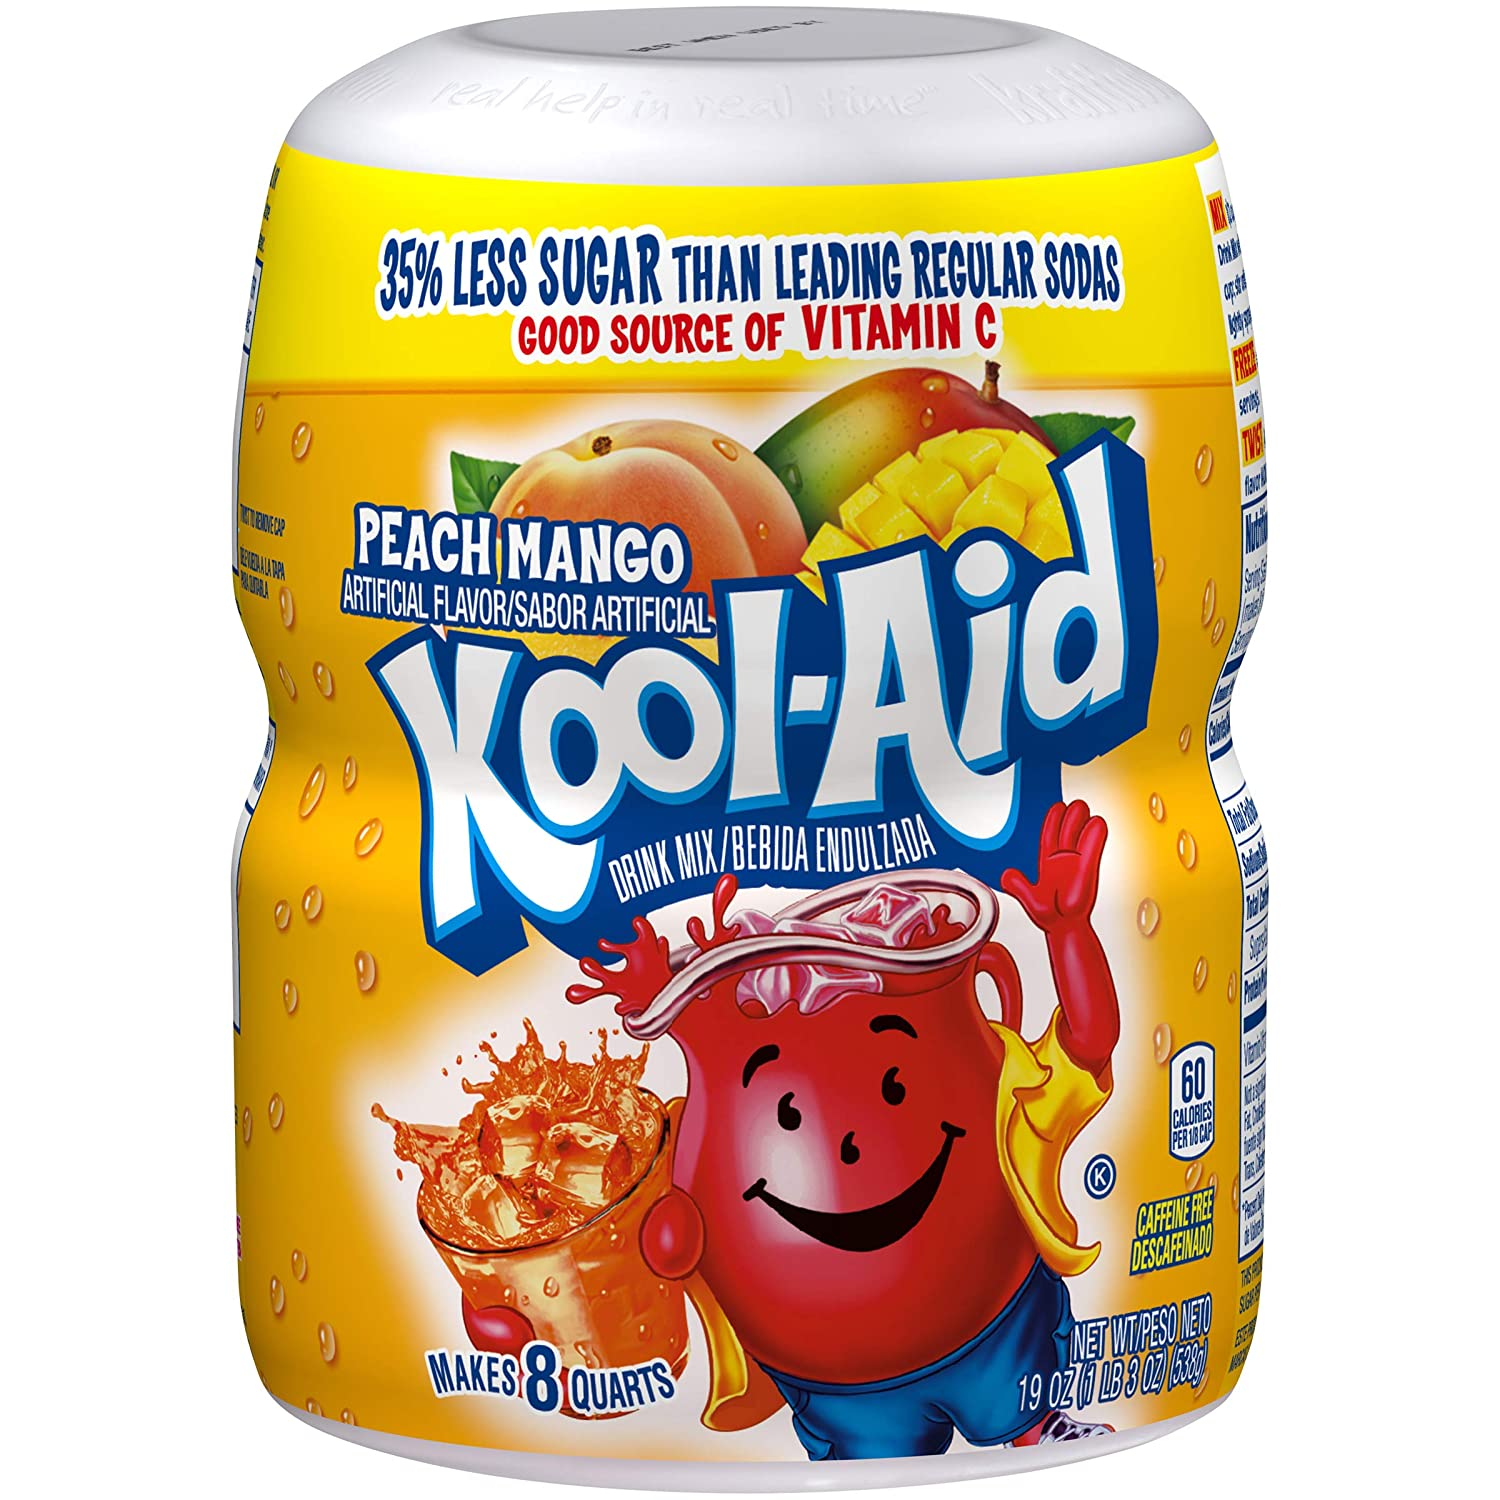 Kool-Aid Sweetened Peach Mango Powdered Drink Mix, Caffeine Free, 19 oz Jar